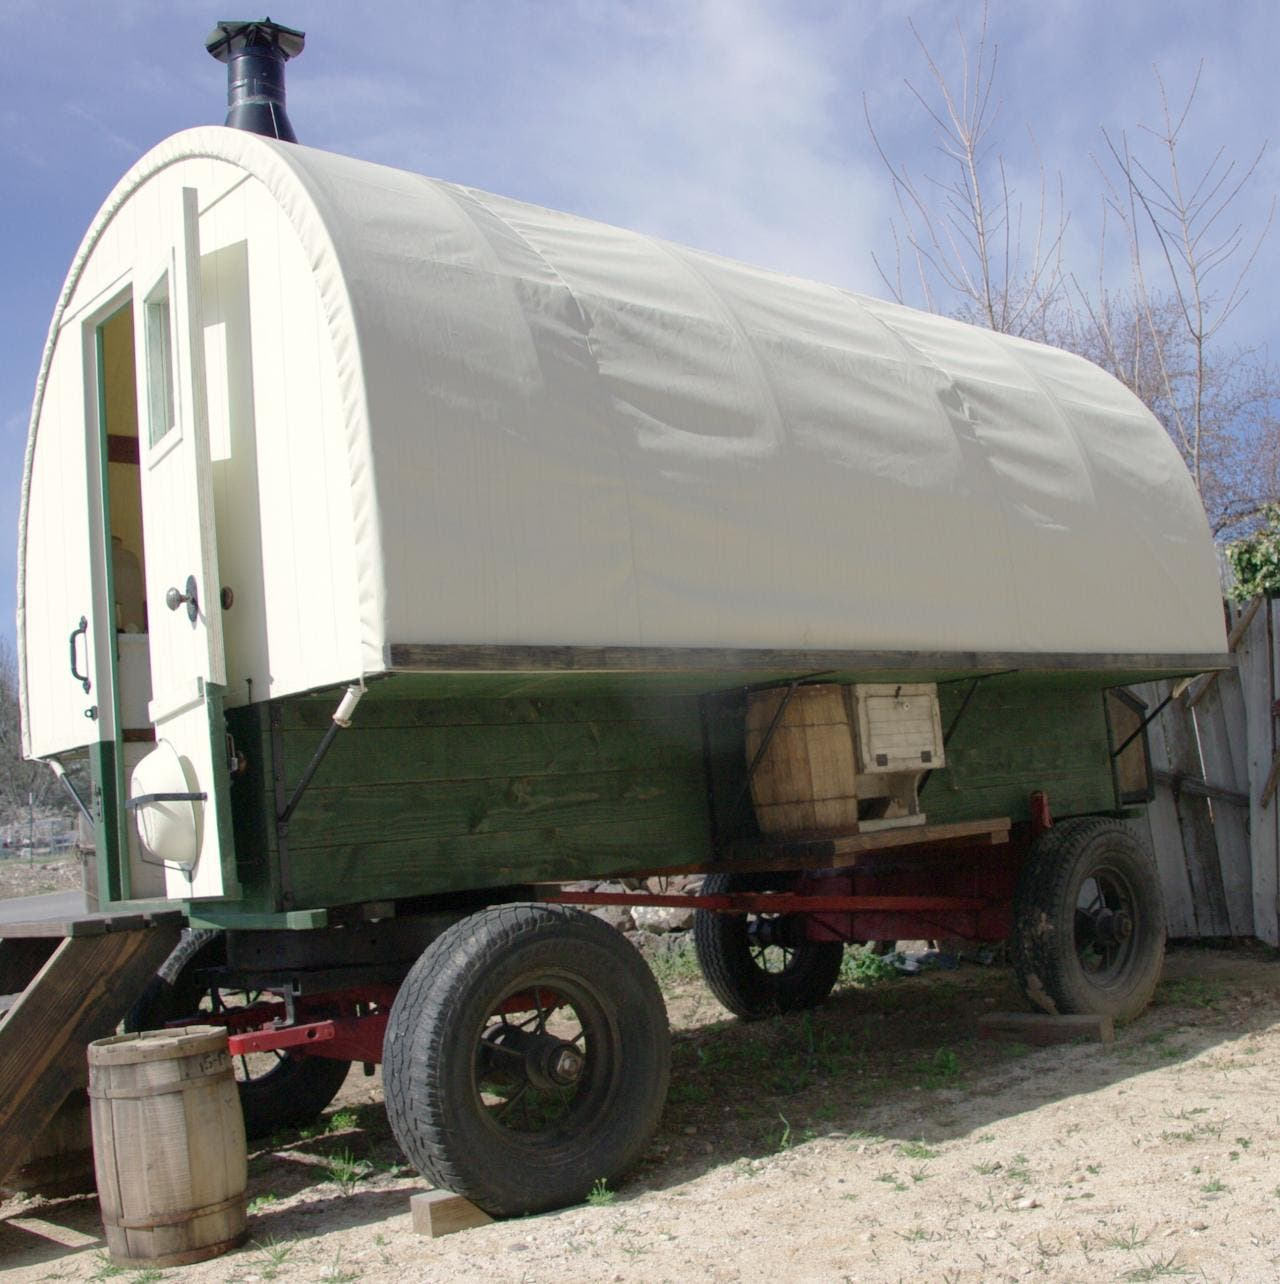 Sheep Wagon sheep wagon Idaho Sheep Wagons